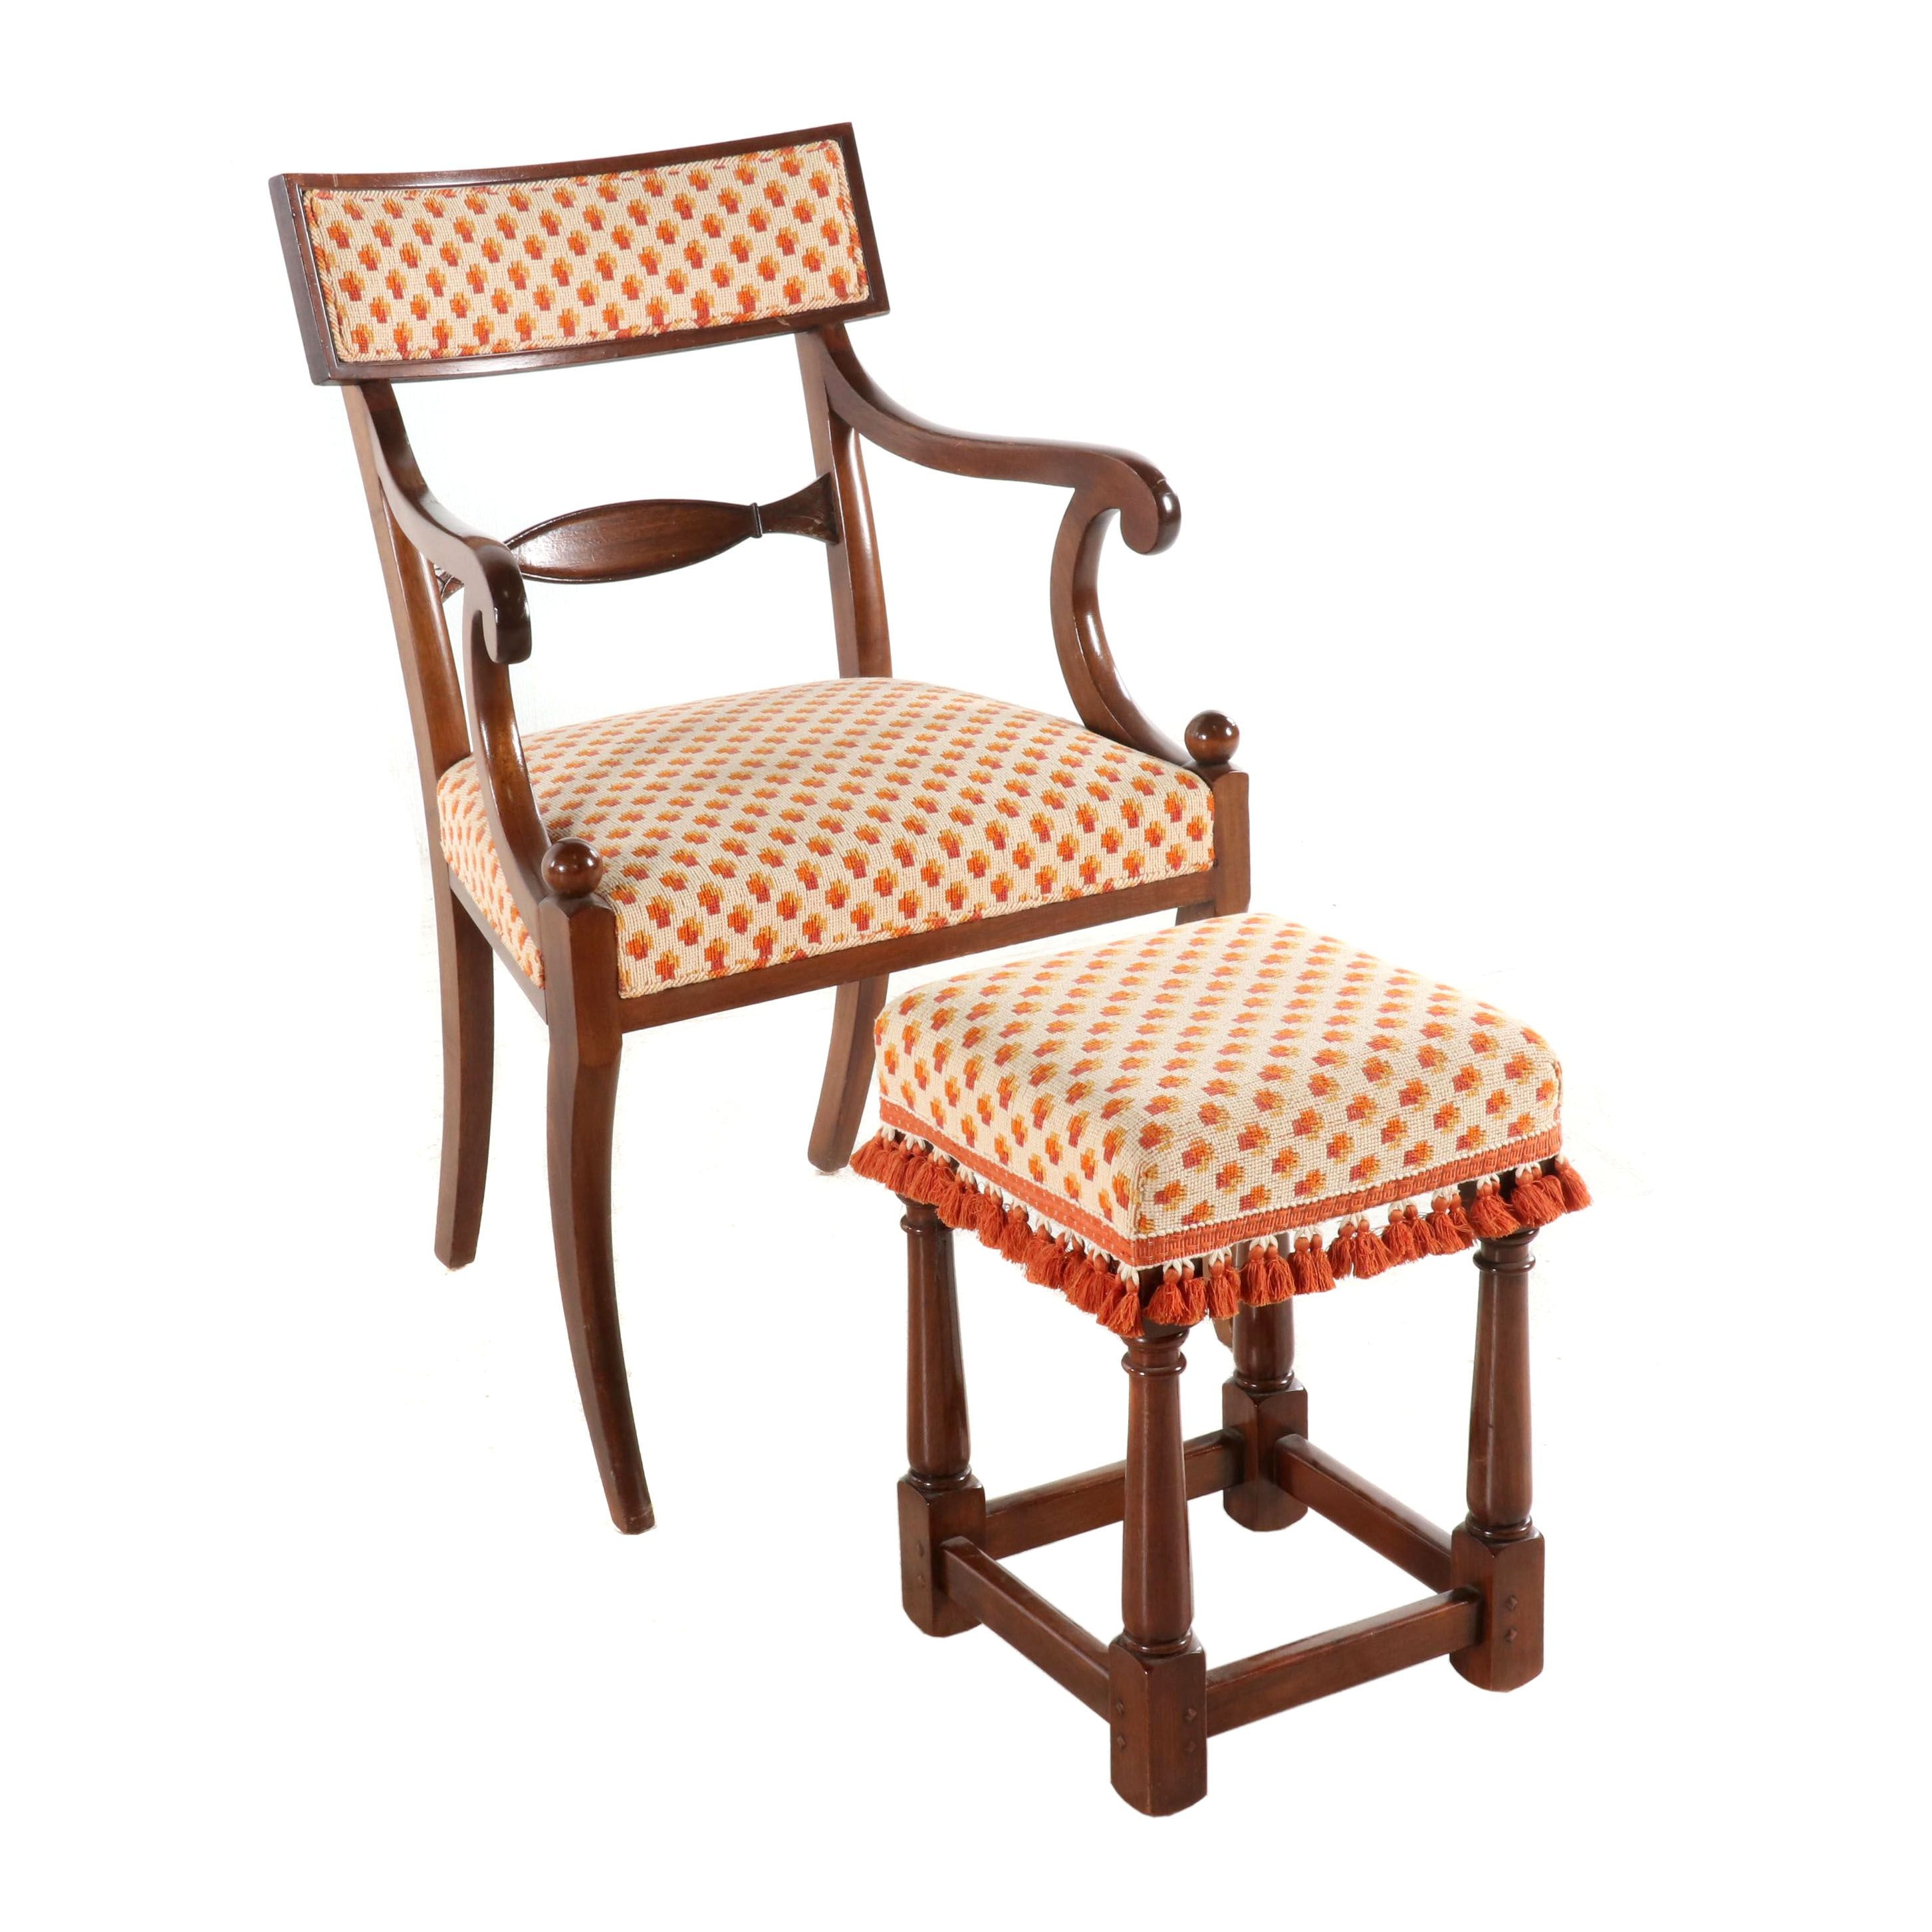 Regency Style Wood and Upholstered Armchair with Ottoman, Mid to Late 20th C.